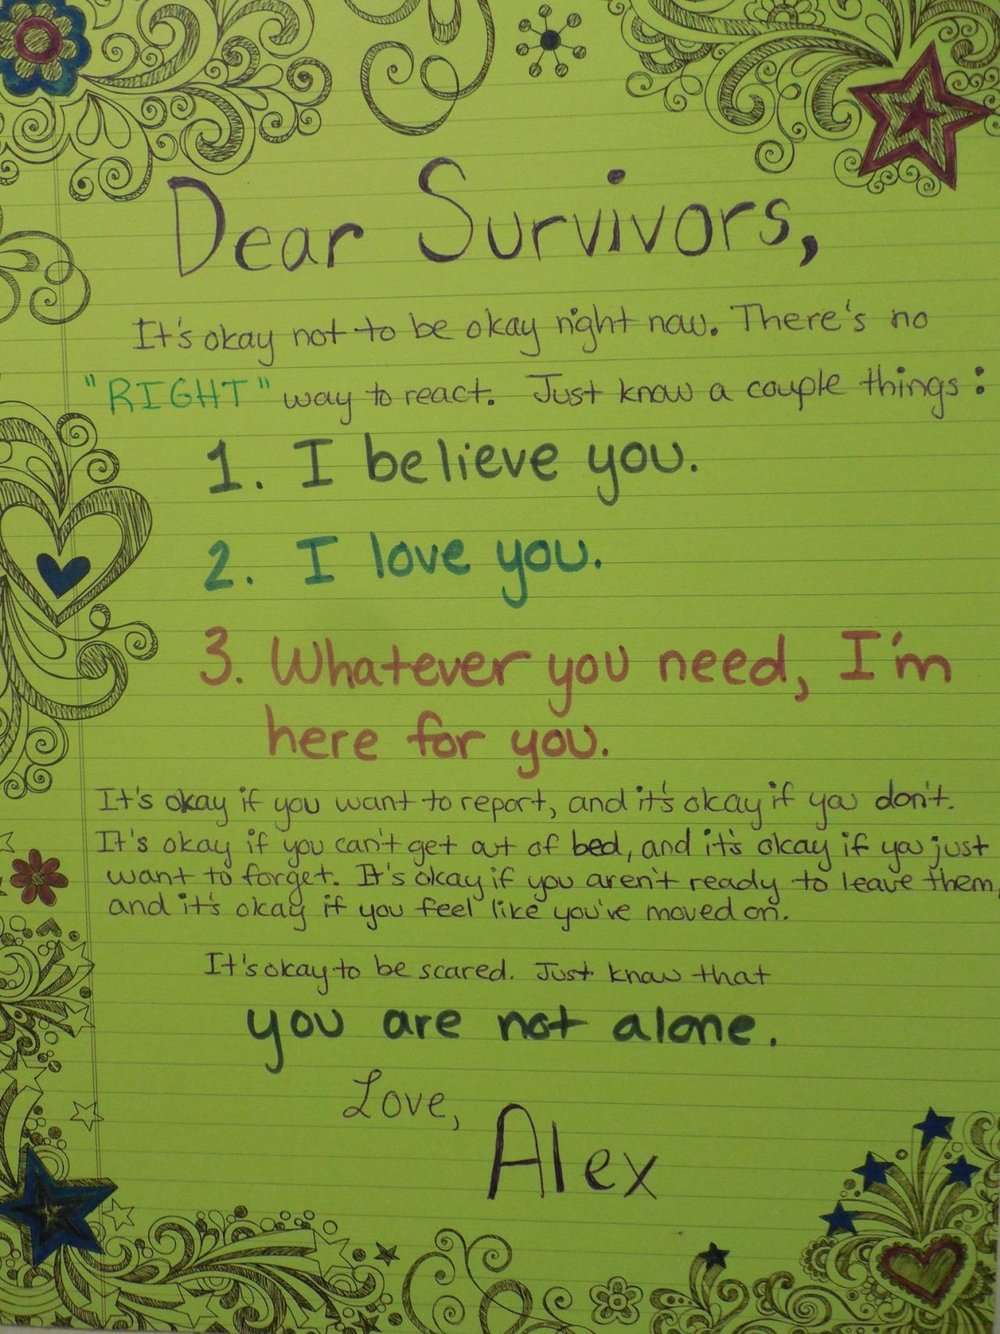 "Dear Survivors,  It's okay not to be okay right now. There's no ""RIGHT"" way to react. Just know a couple things:  1. I believe you. 2. I love you. 3. Whatever you need, I'm here for you.  It's okay if you want to report, and it's okay if you don't. It's okay if you can't get out of bed, and it's okay if you just want to forget. It's okay if you aren't ready to leave and it's okay if you feel like you've moved on.  It's okay to be scared.  Just know that you are not alone.  Love,  Alex"